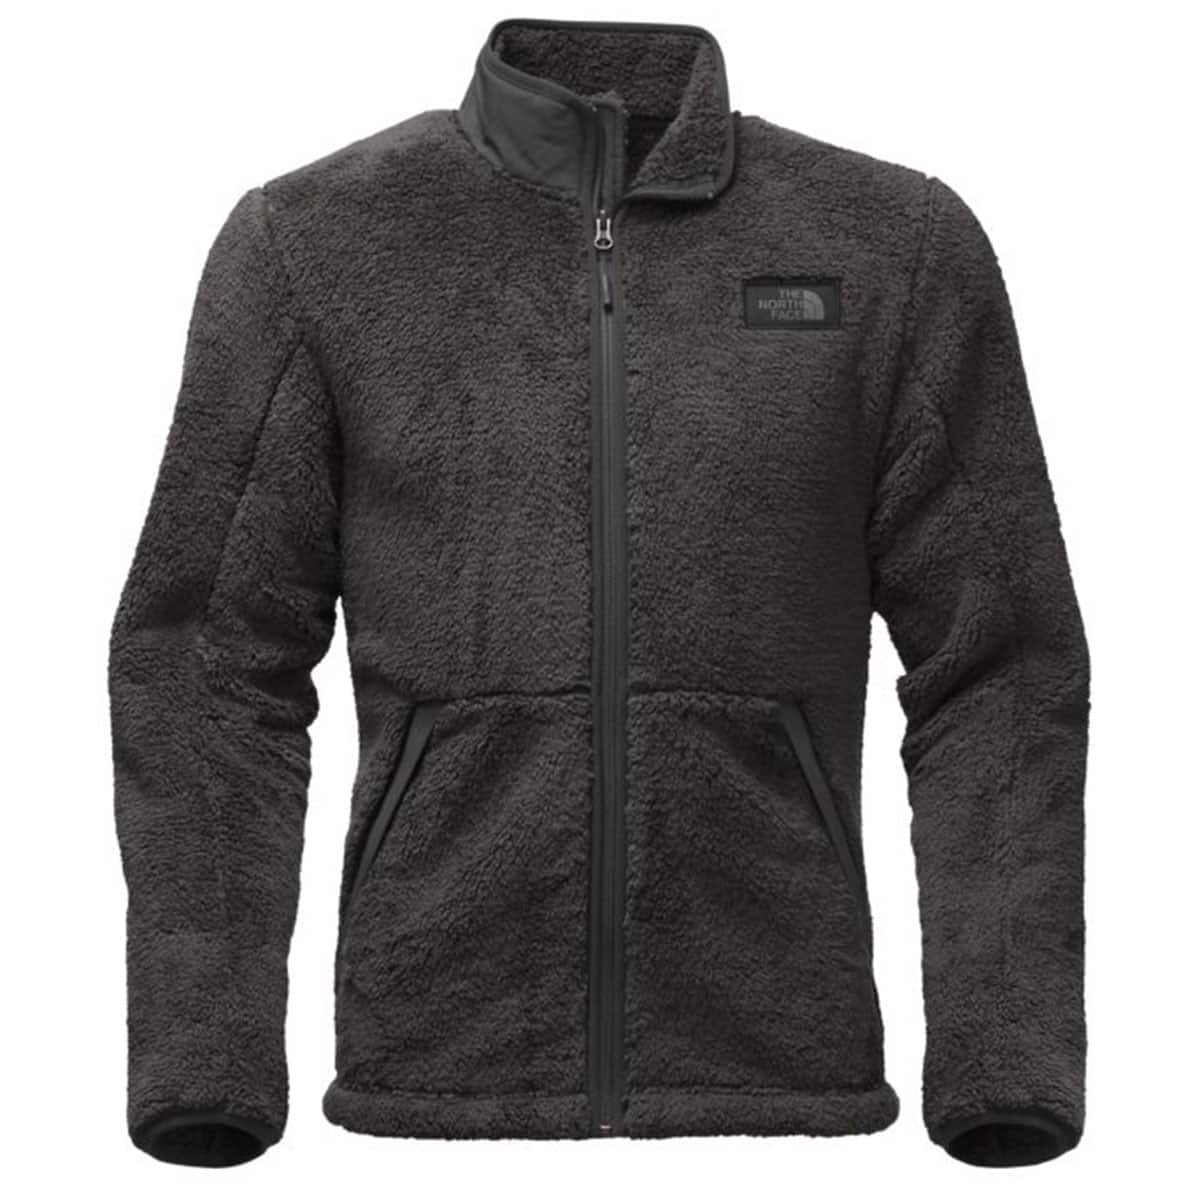 EMS THE NORTH FACE Men's Campshire Full-Zip Fleece $44.98 & More + shipping